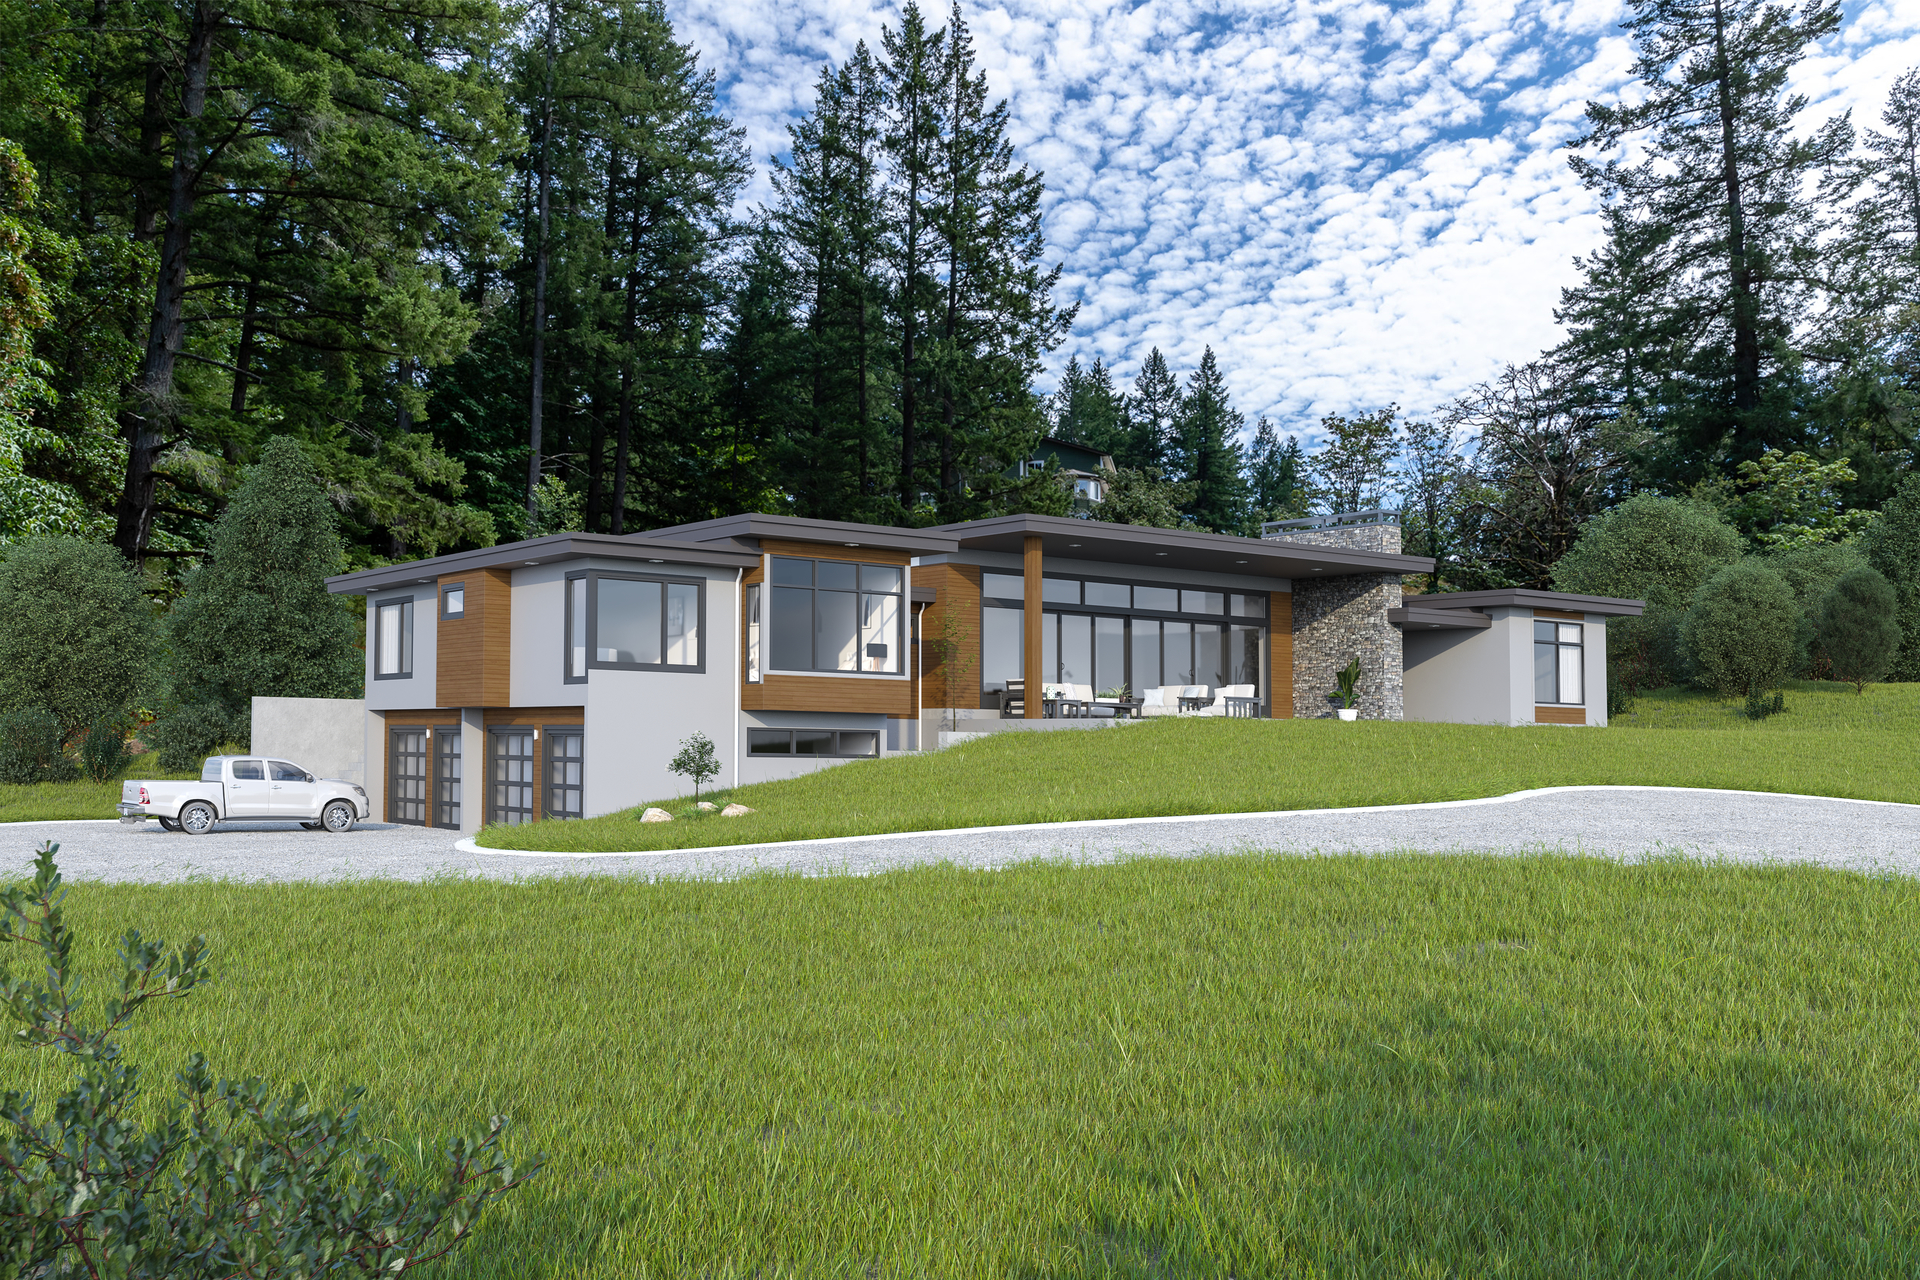 Images Rendered And Not Exact To Finished Product at 5100 Jagtar's Way, Victoria, Vancouver Island,